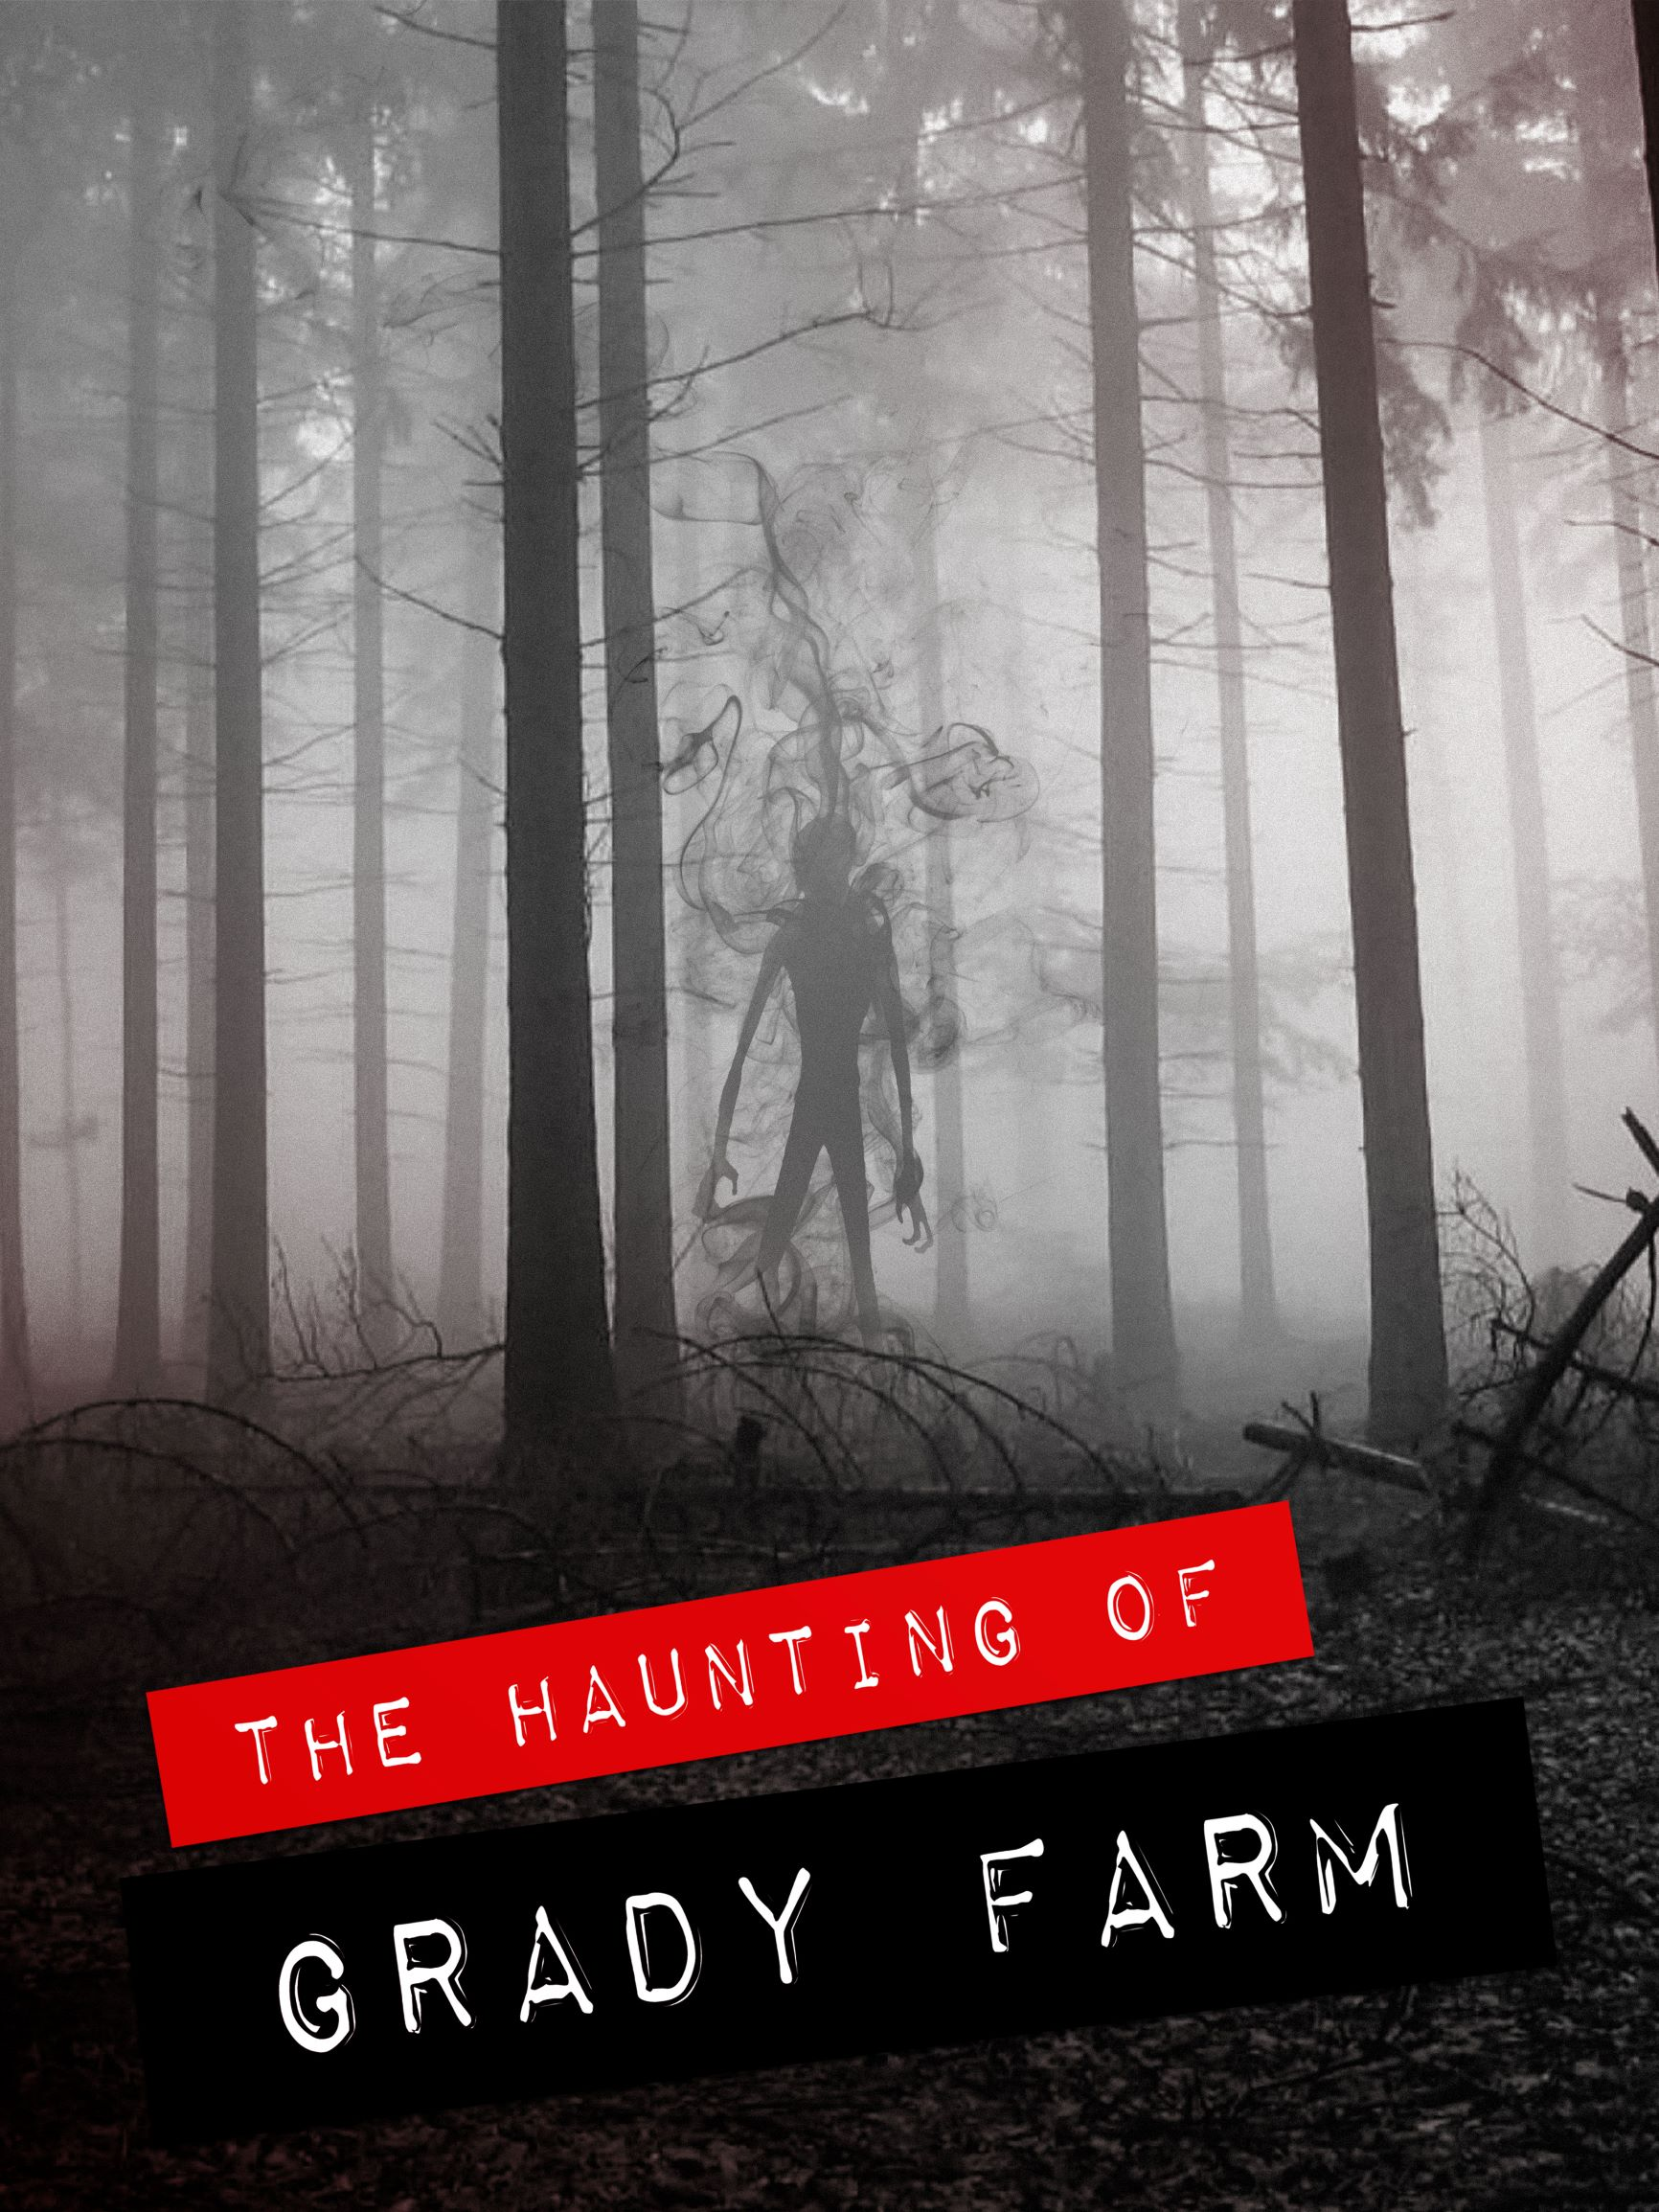 High Octane Pictures Presents a Thrilling NEW Found-Footage Horror Film: THE HAUNTING OF GRADY FARM – Available for VOD November 3rd